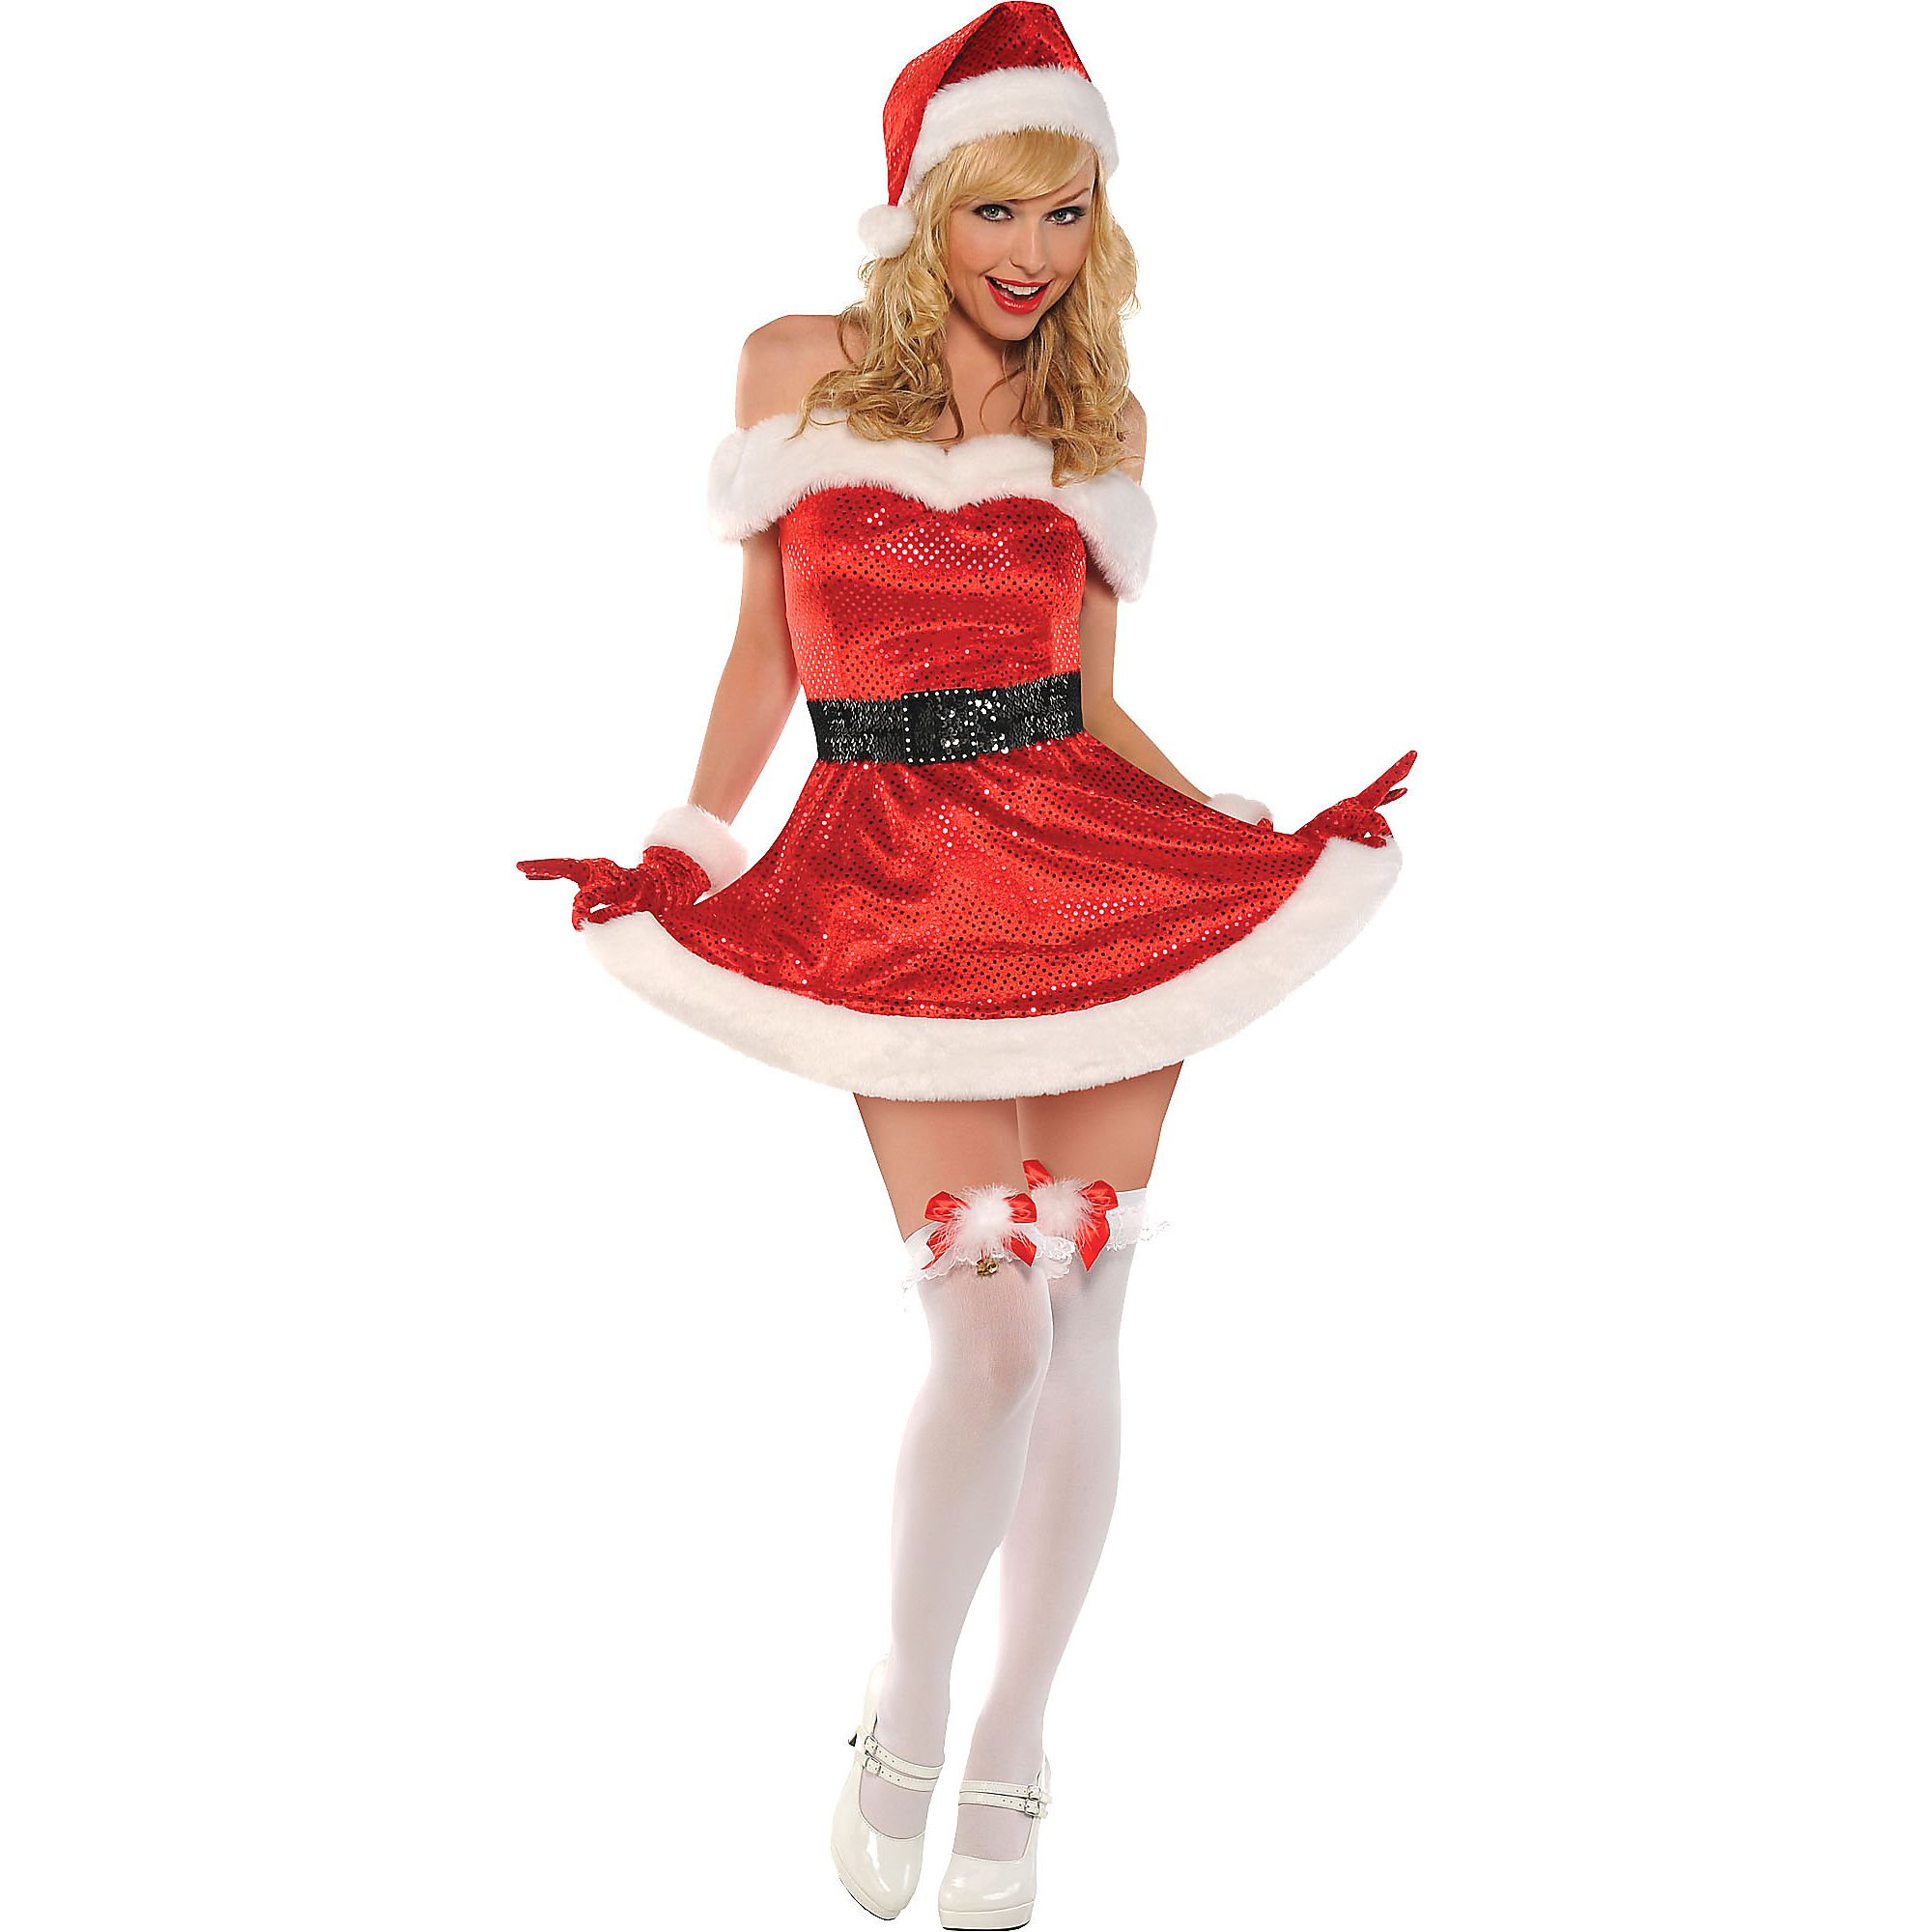 f01c1ad6c09 Merry Kiss Me Costume for Women